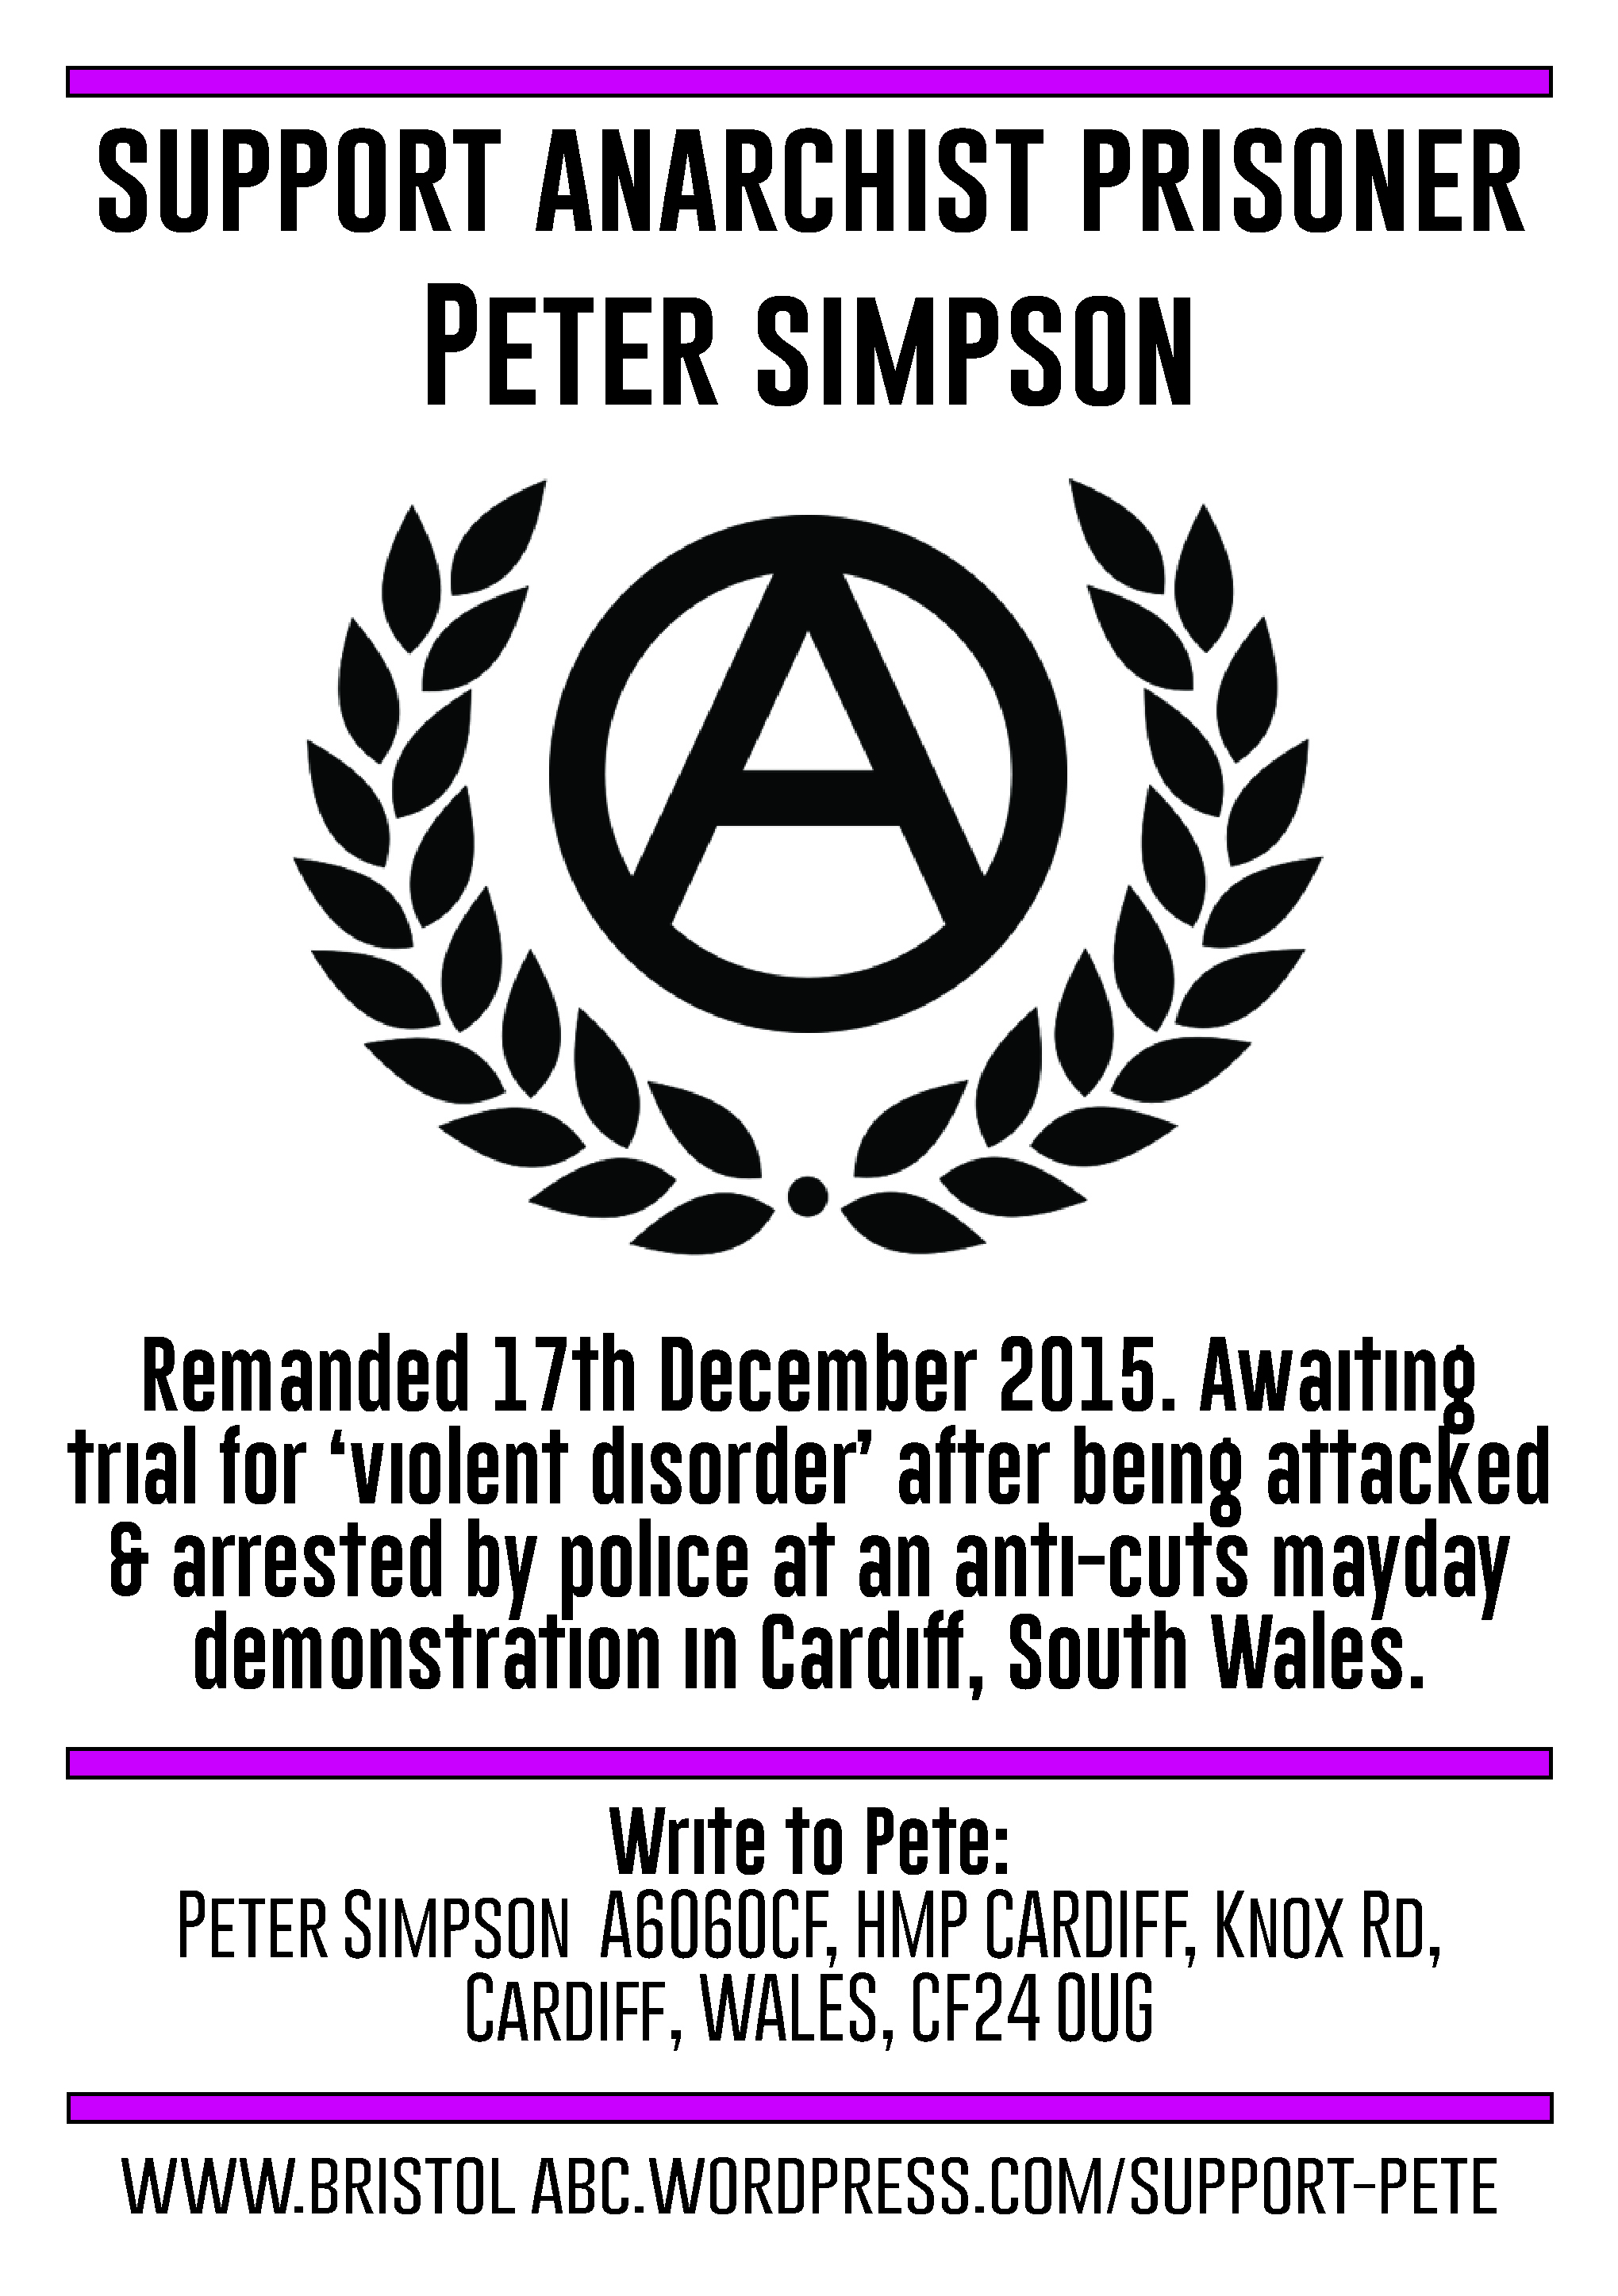 https://bristolabc.files.wordpress.com/2015/12/support-pete.jpg